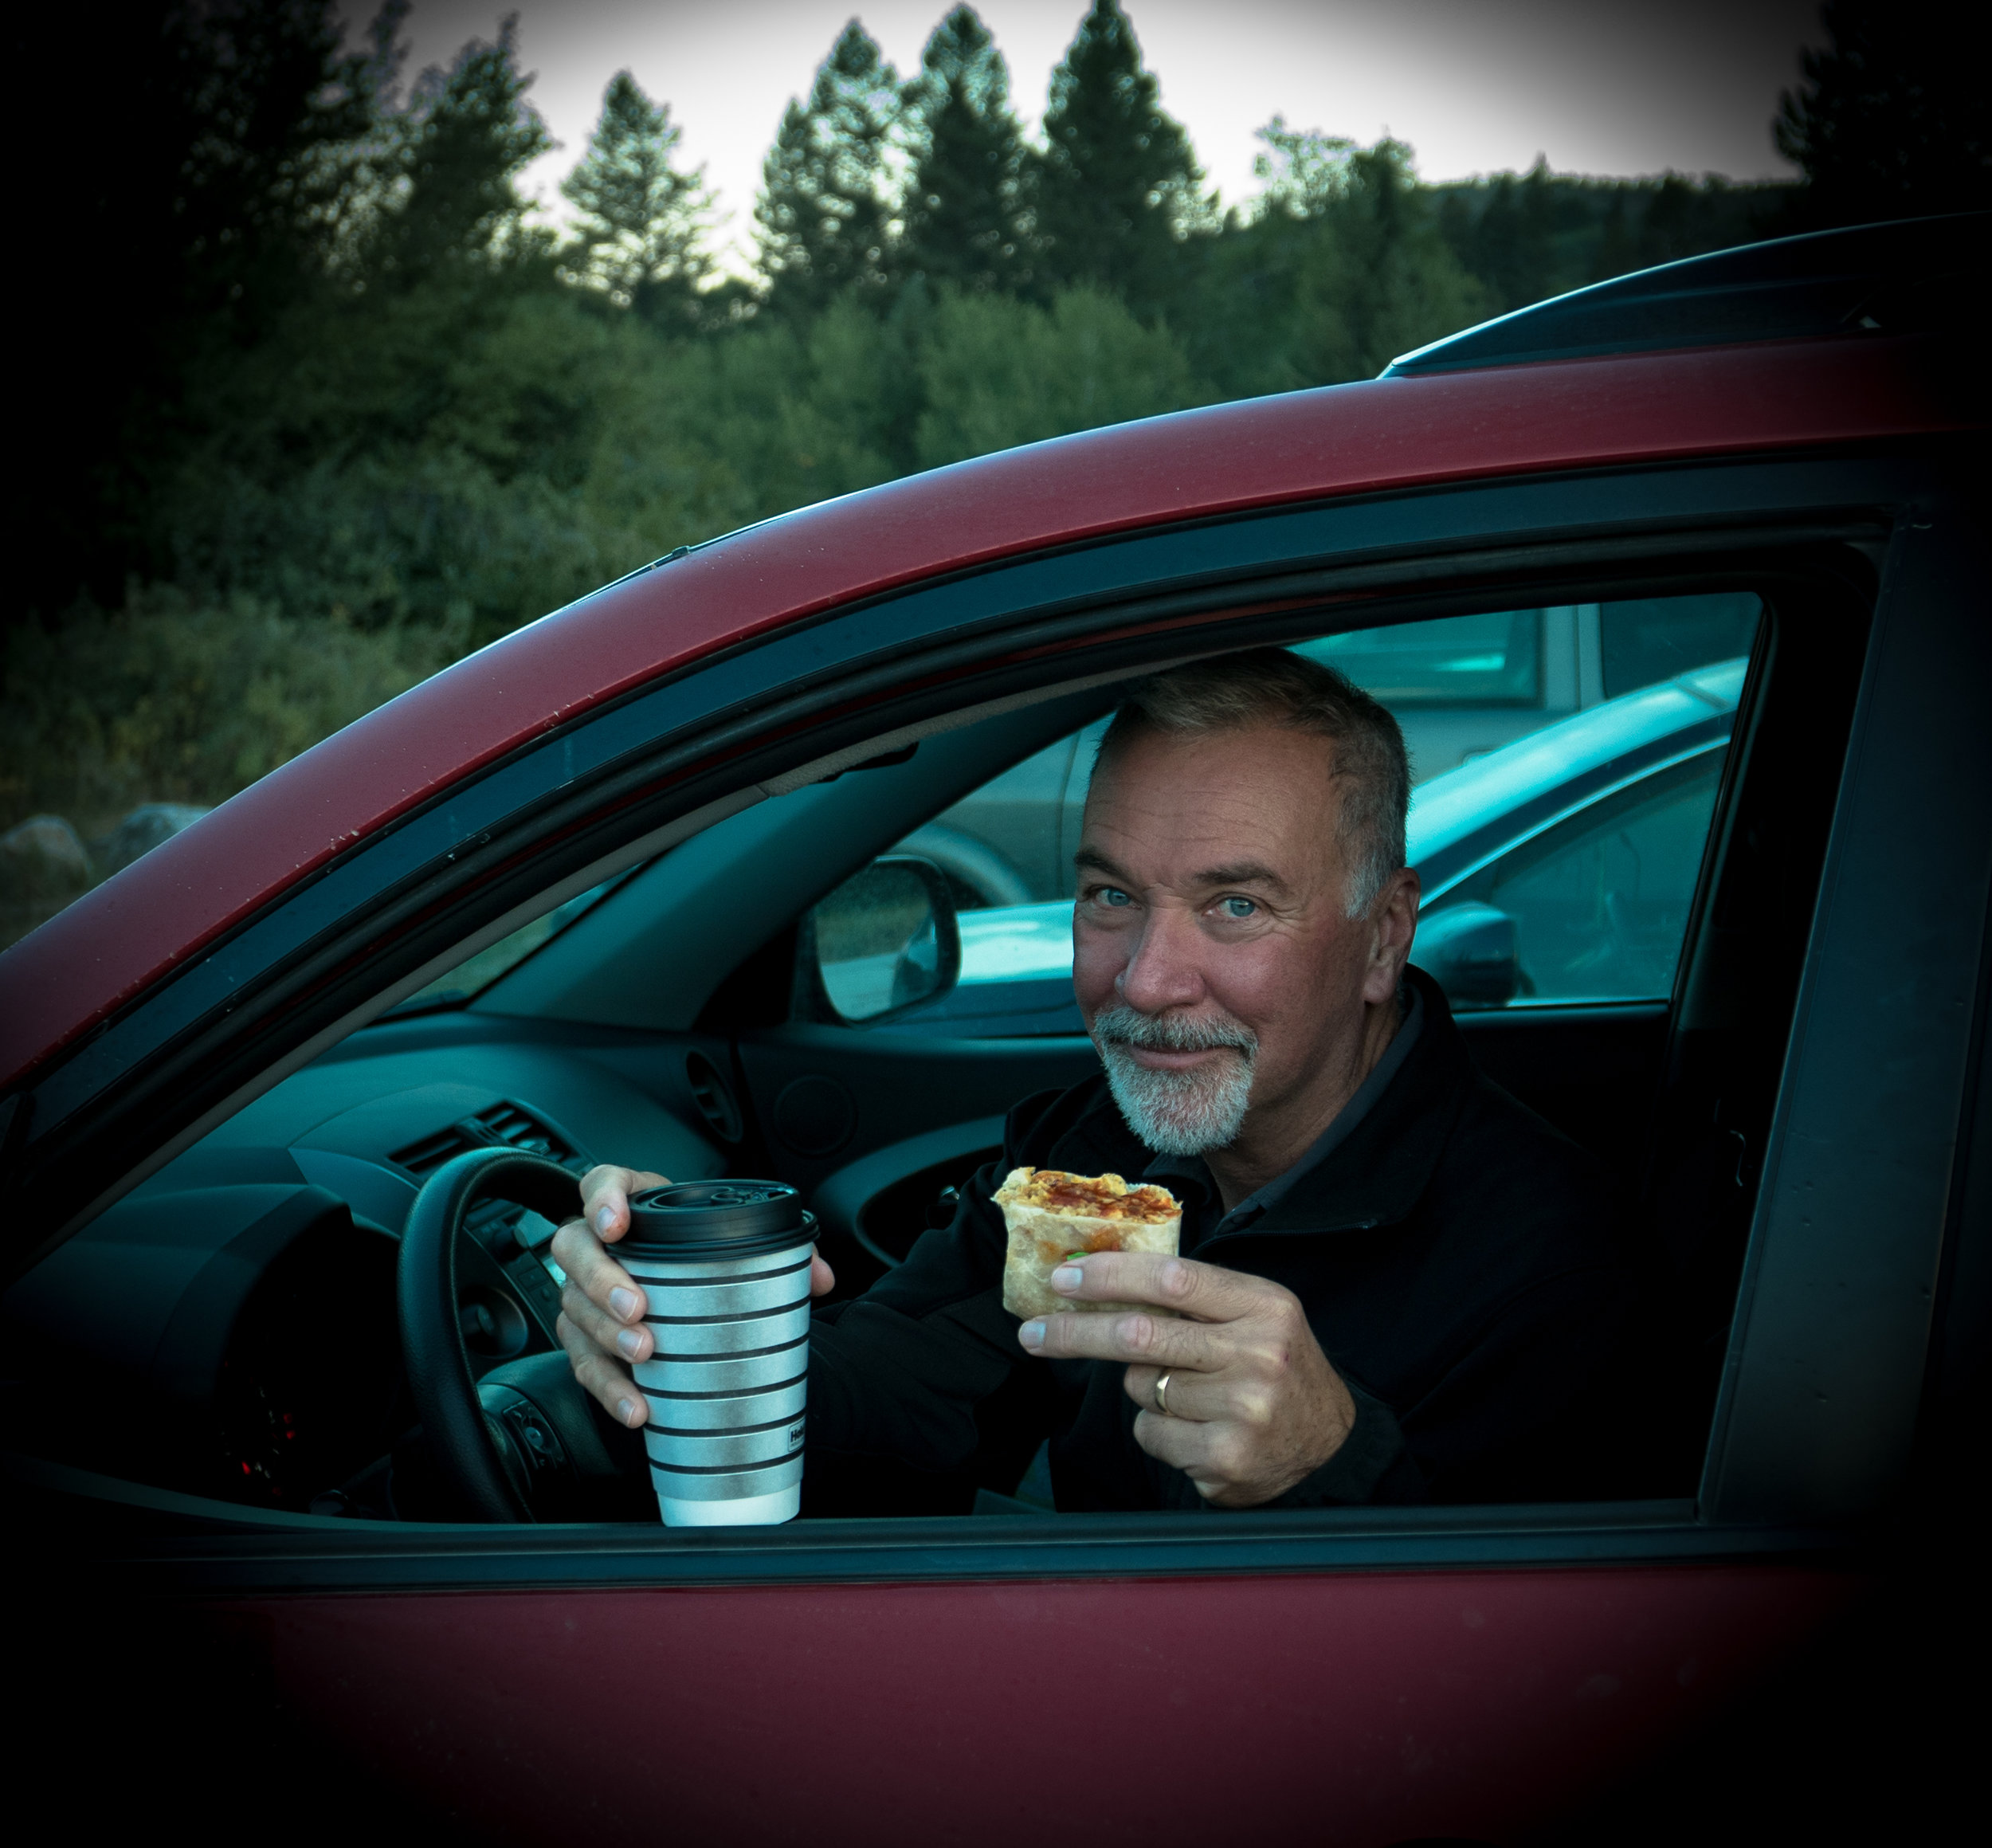 Keith is a Happy Camper with his morning coffee and breakfast burrito.